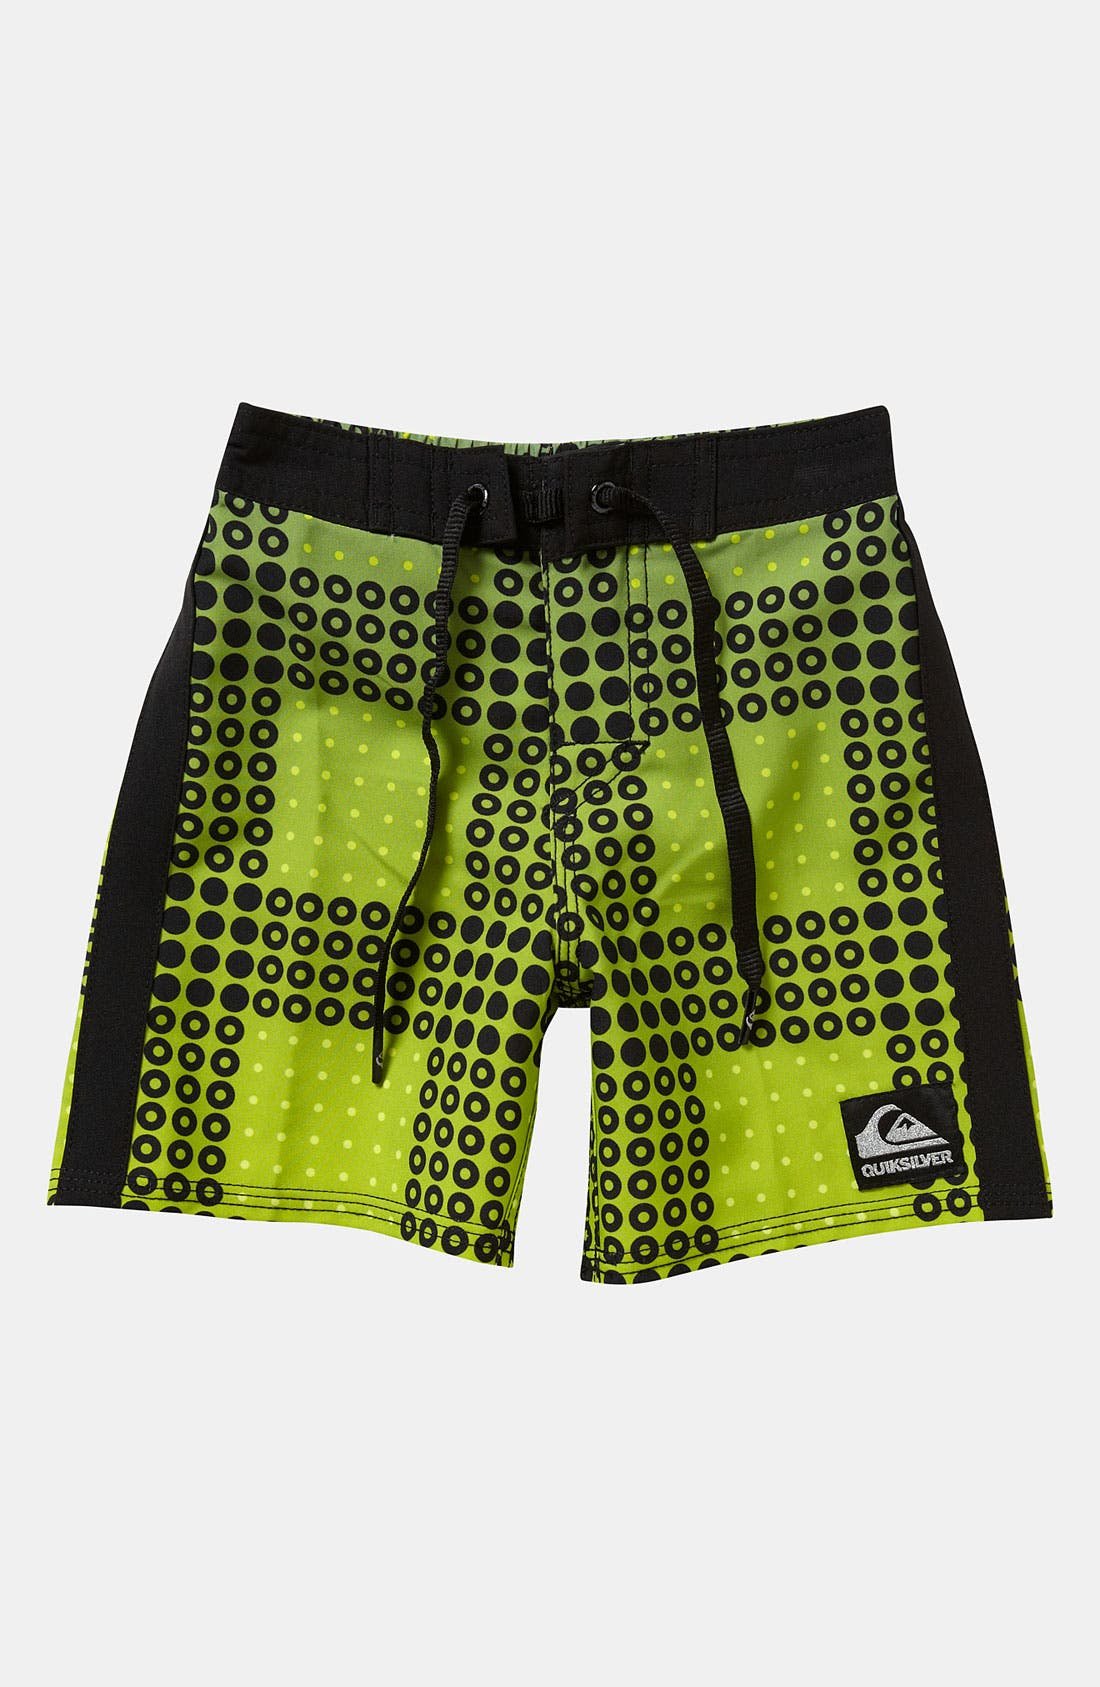 Alternate Image 1 Selected - Quiksilver 'Inverse' Board Shorts (Infant)